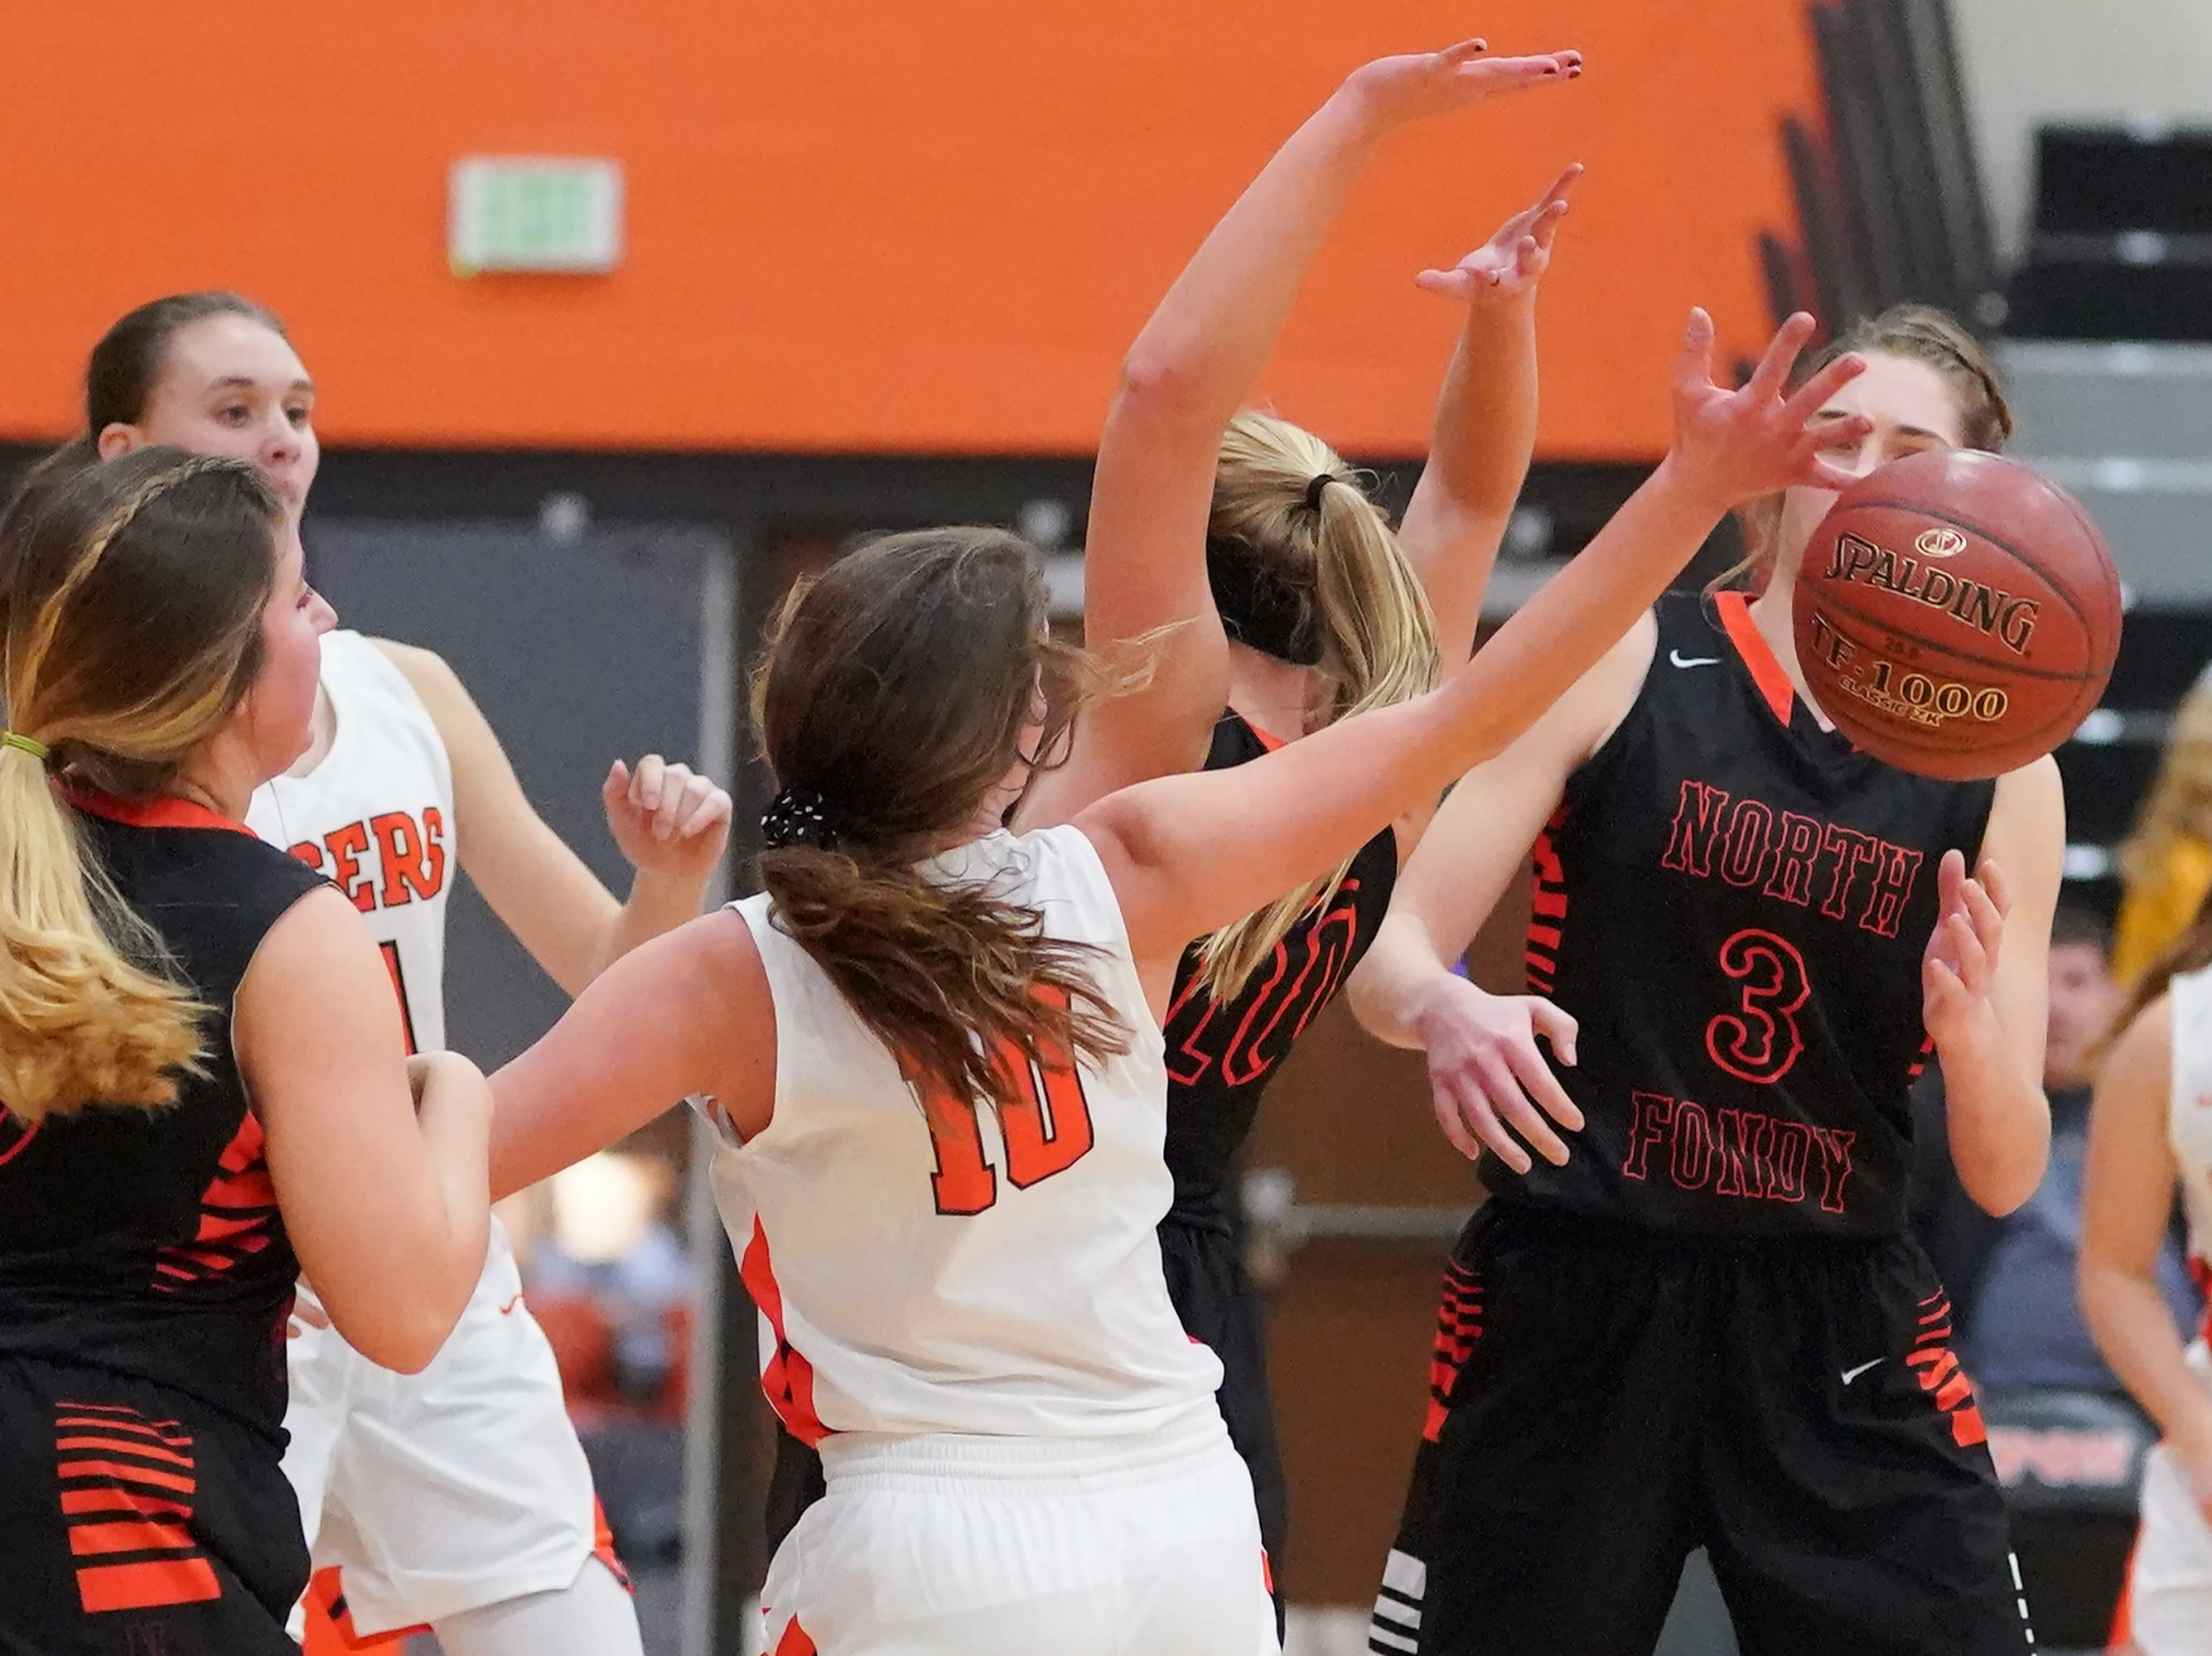 Grace Rauch (10) of Ripon reaches for a rebound. The Ripon Tigers hosted the North Fond du Lac Orioles in a non-conference basketball game Thursday evening, November 15, 2018.